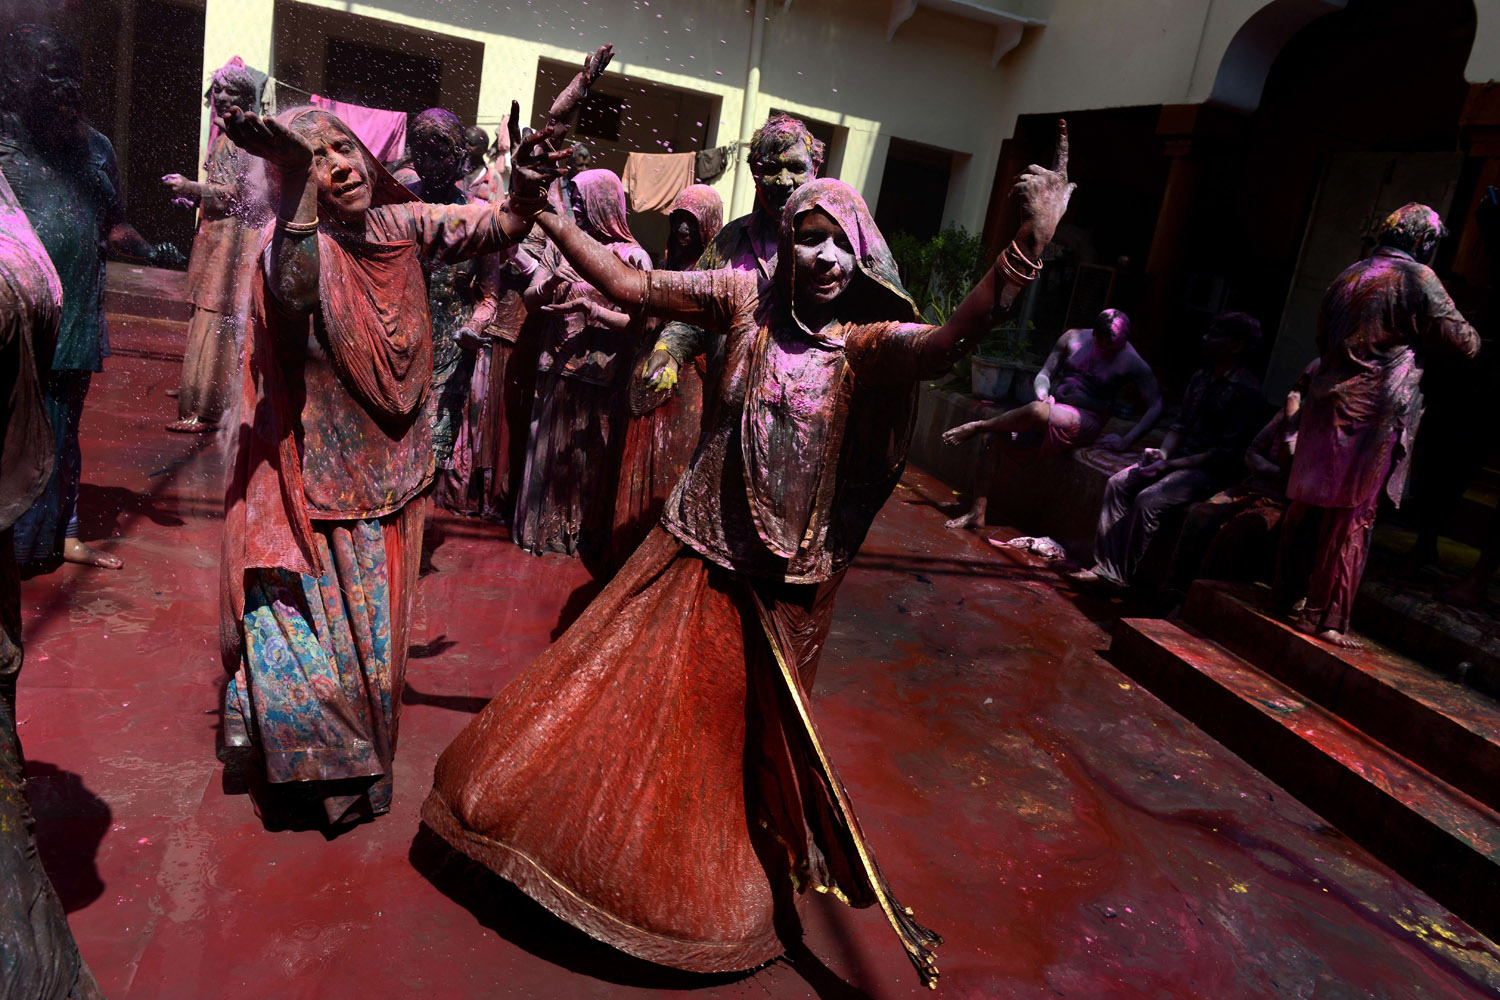 Mar. 17, 2014. Indian devotees covered in colored powder dance during Holi celebrations in Vrindavan. Holi, also called the Festival of Colors, is a popular Hindu spring festival observed in India at the end of the winter season on the last full moon of the lunar month.